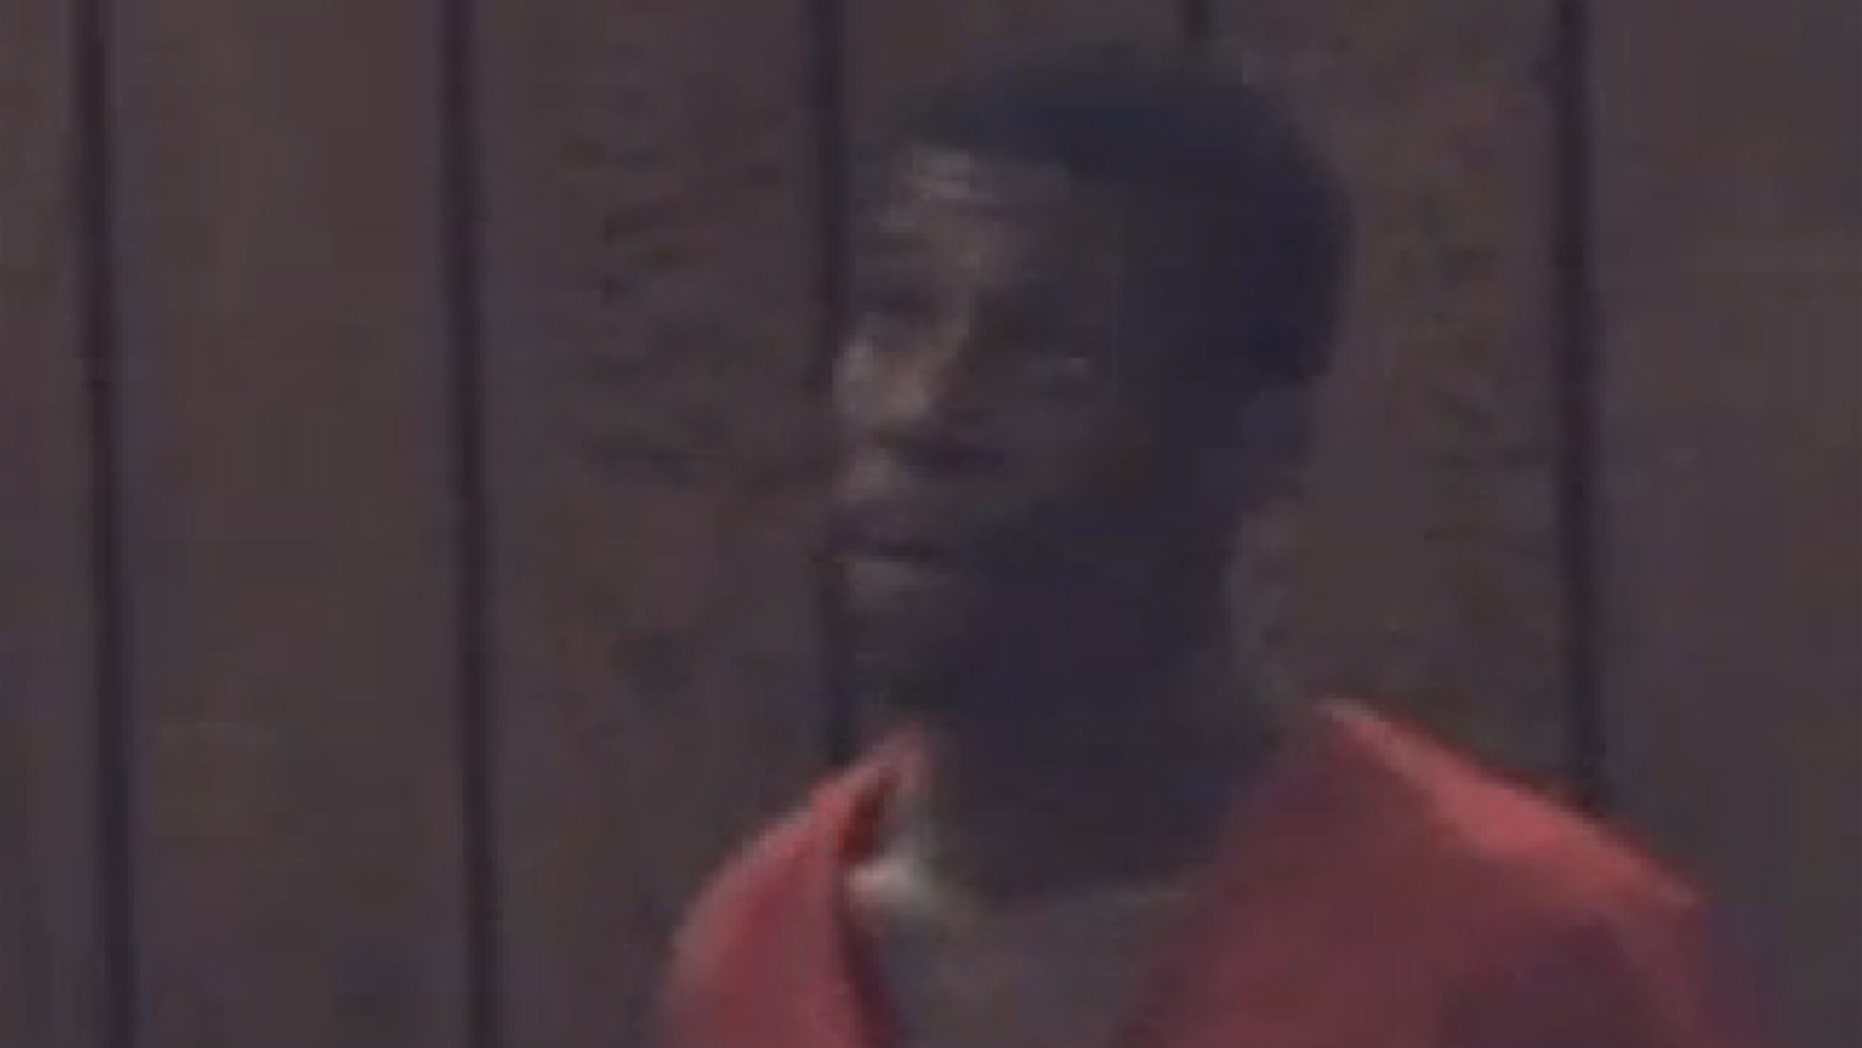 July 3, 2012: The father of toddler found dead in dumpster appears in court.